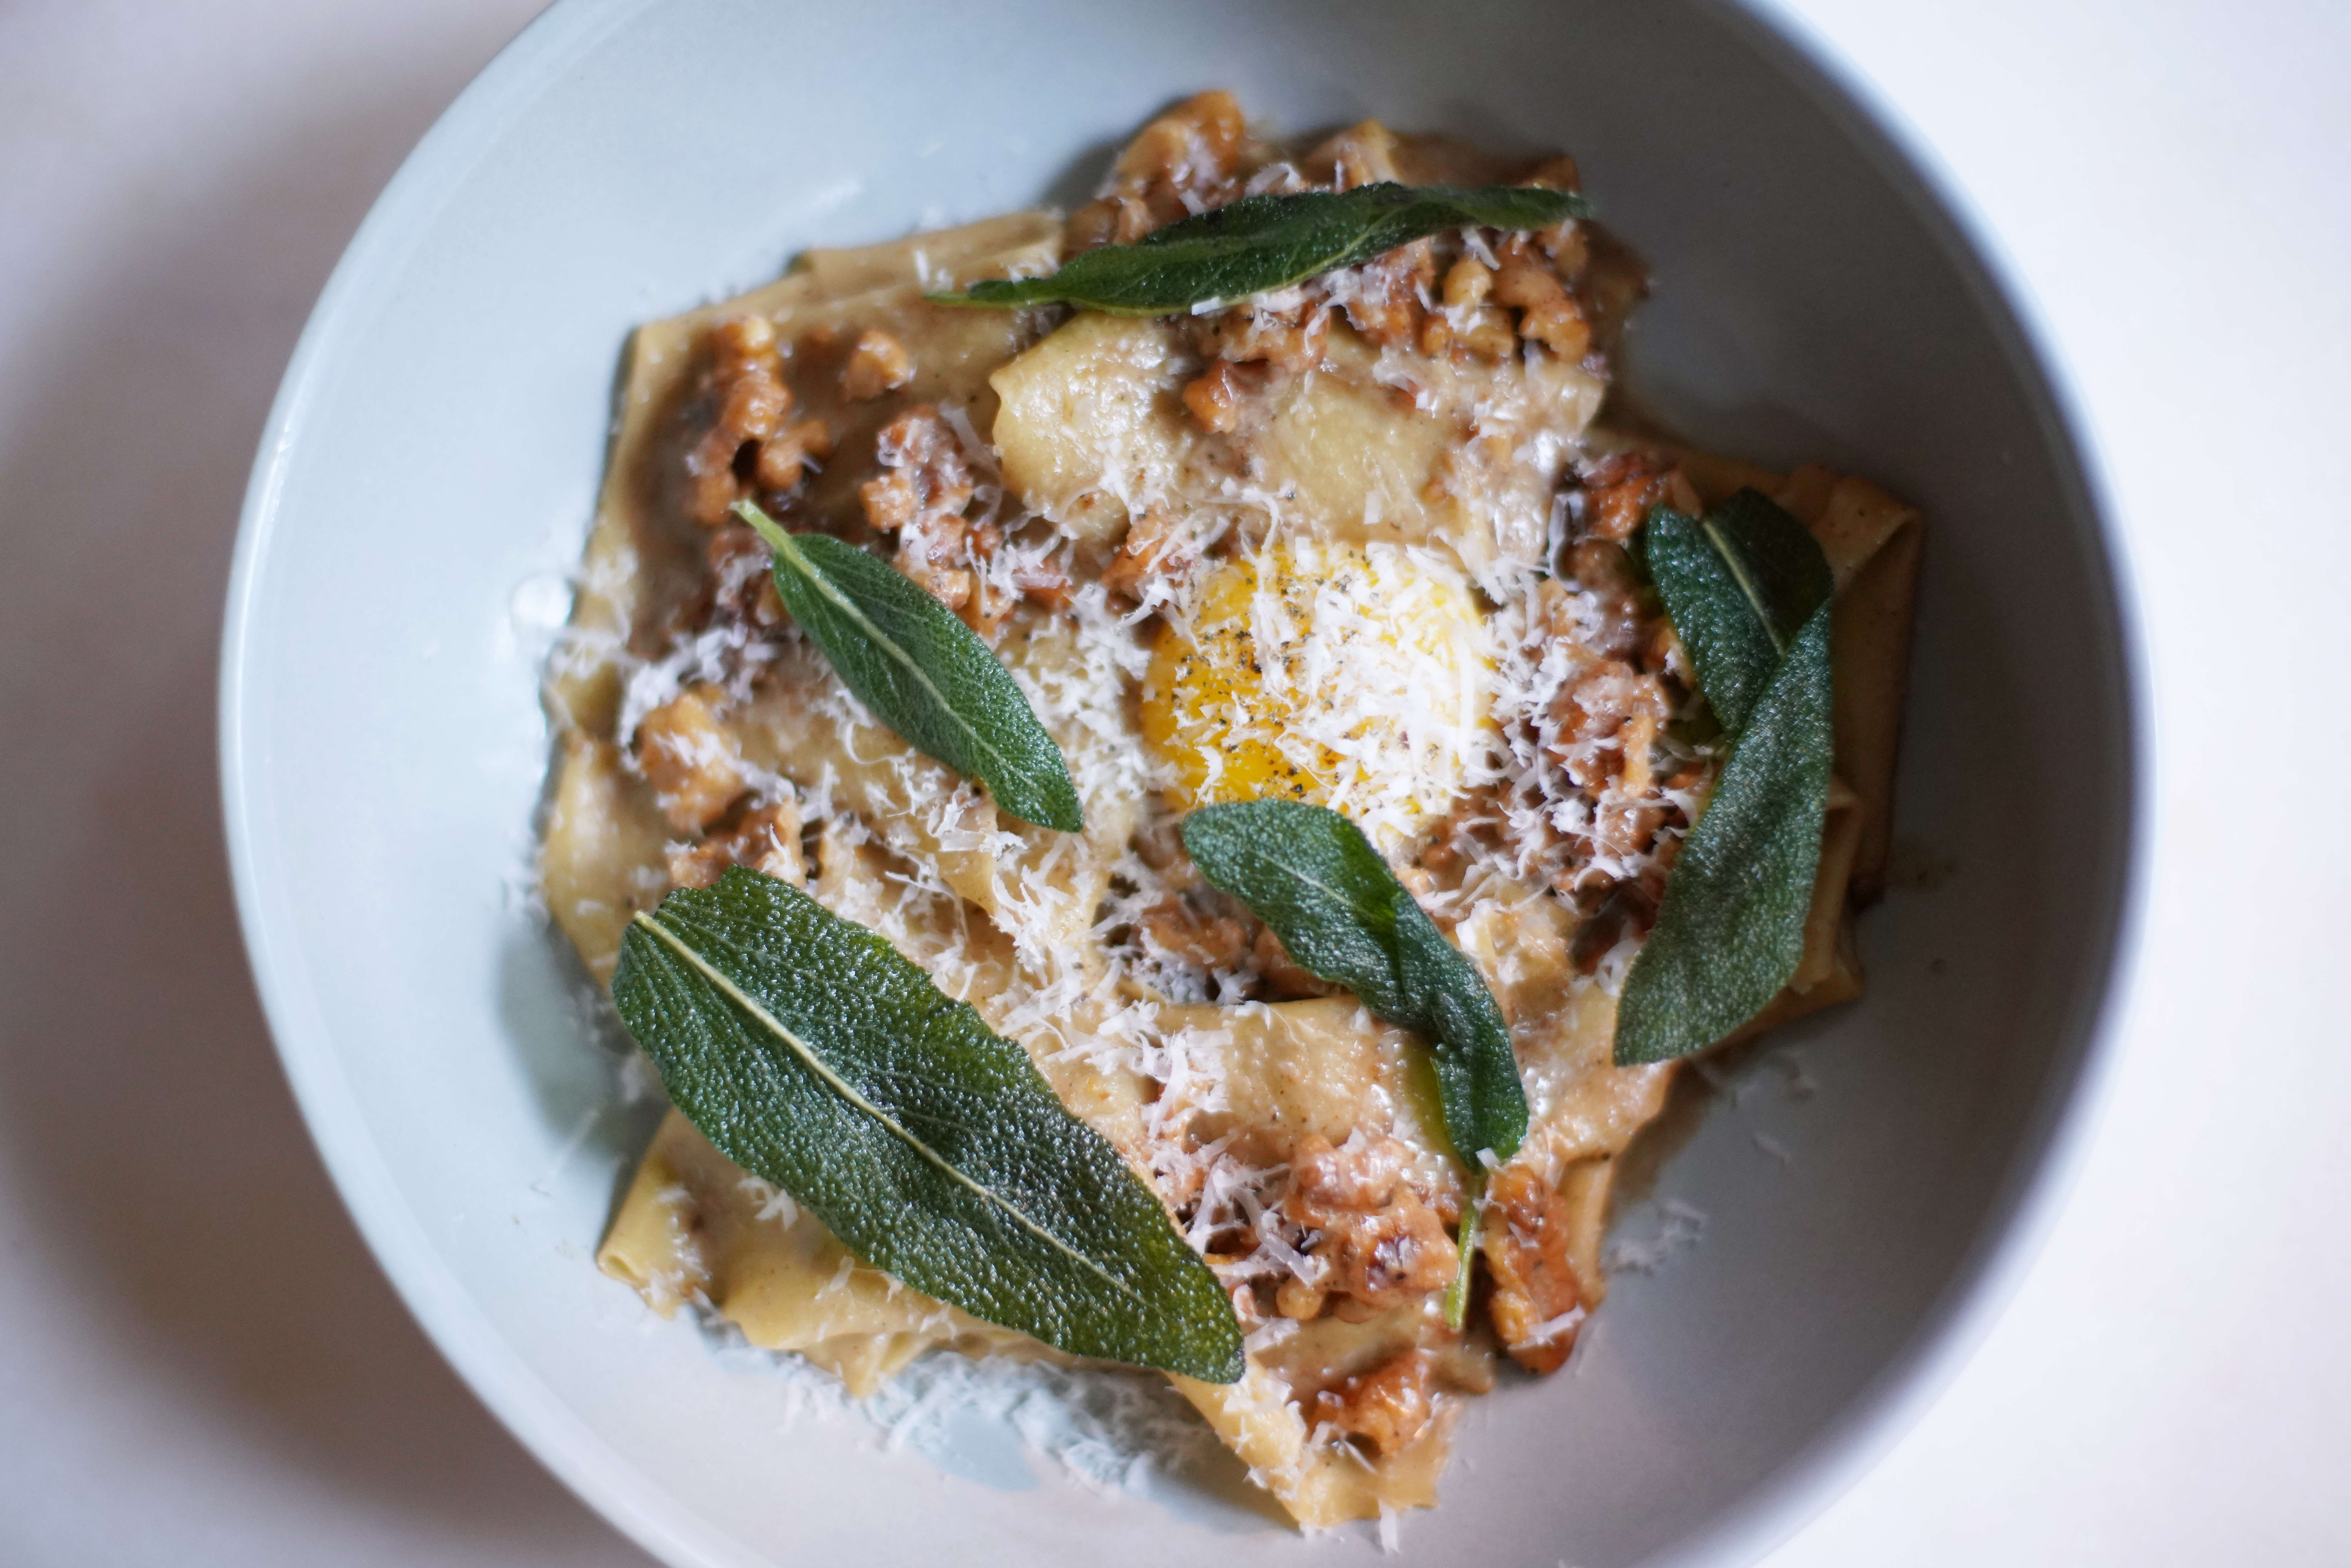 plate of pasta with egg